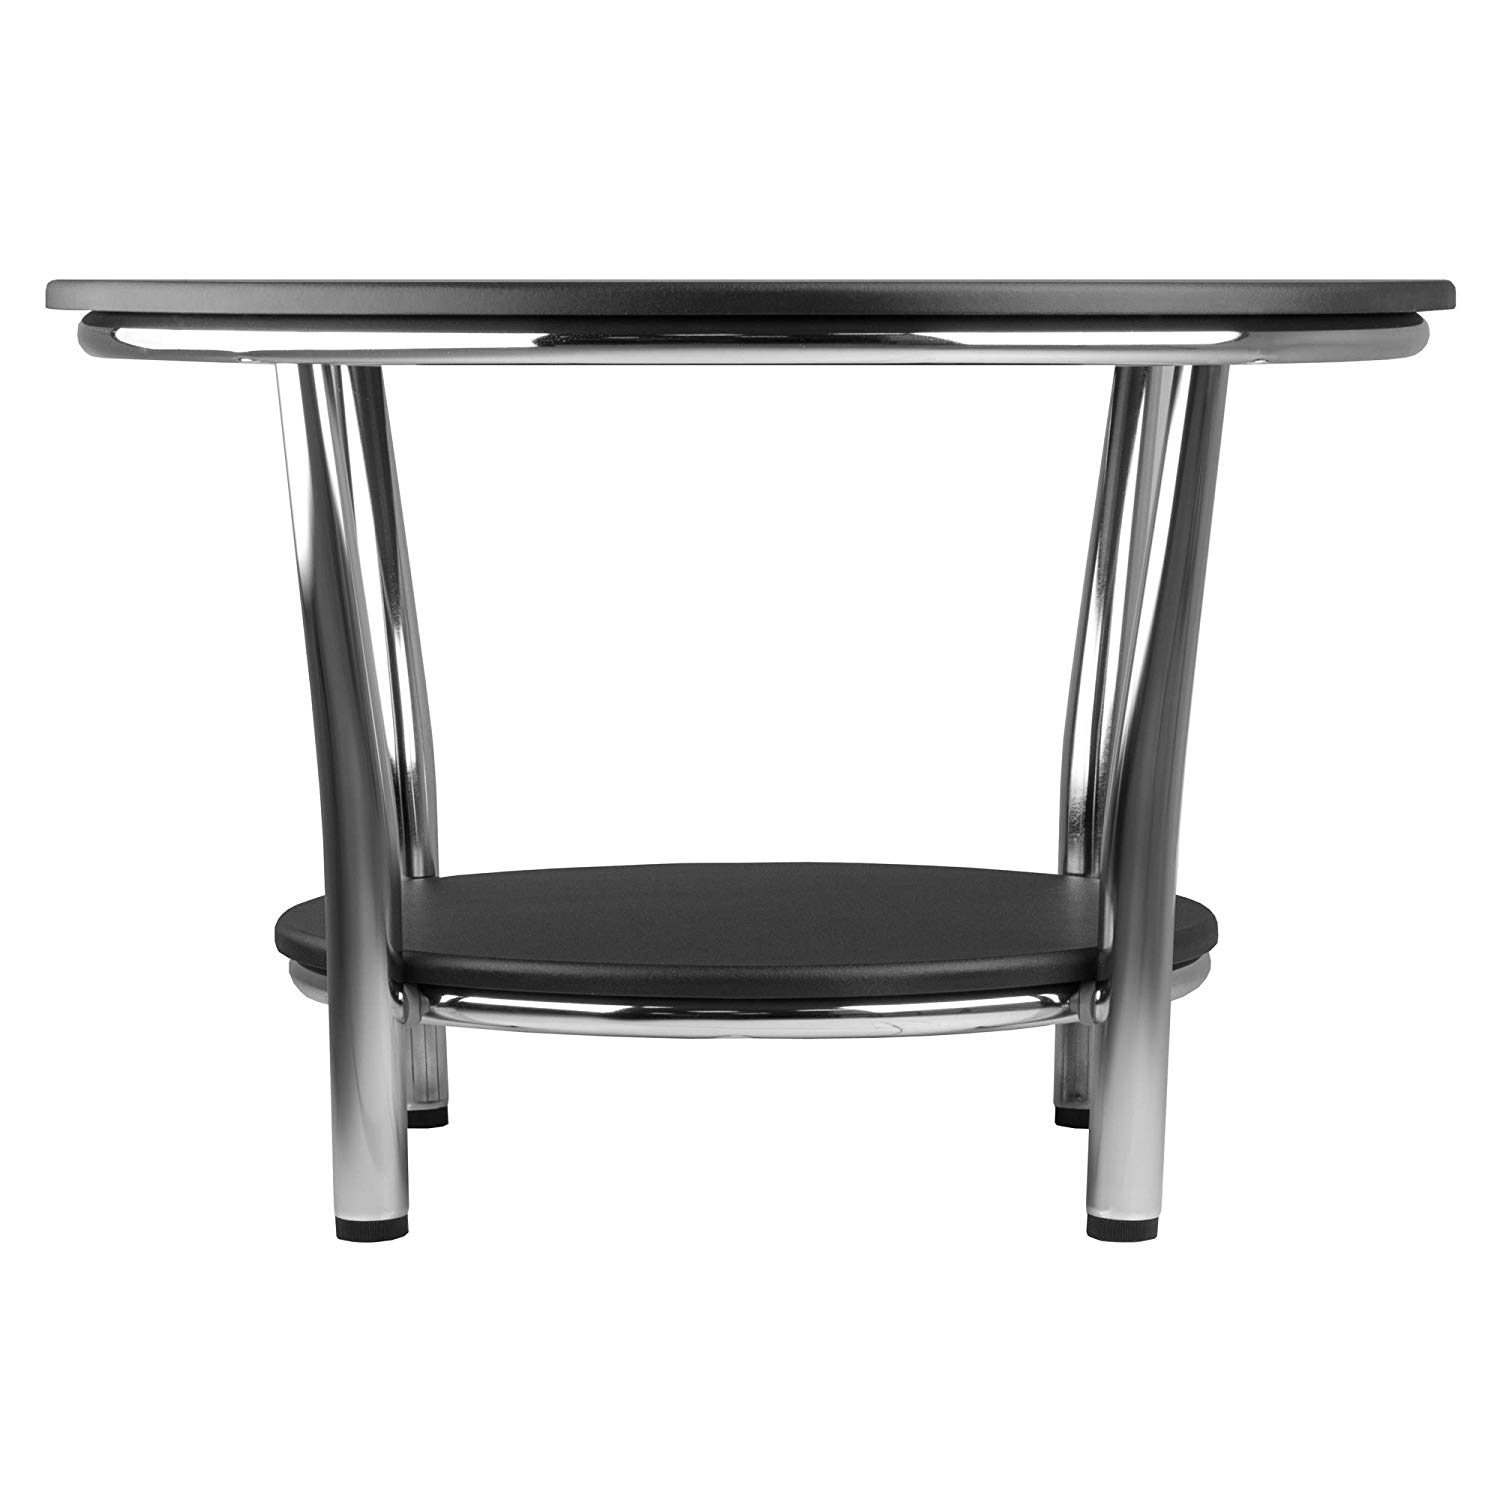 winsome wood occasional table black metal cassie accent with glass top cappuccino finish kitchen dining target vanity dog kennel end teak garden furniture round tables for living